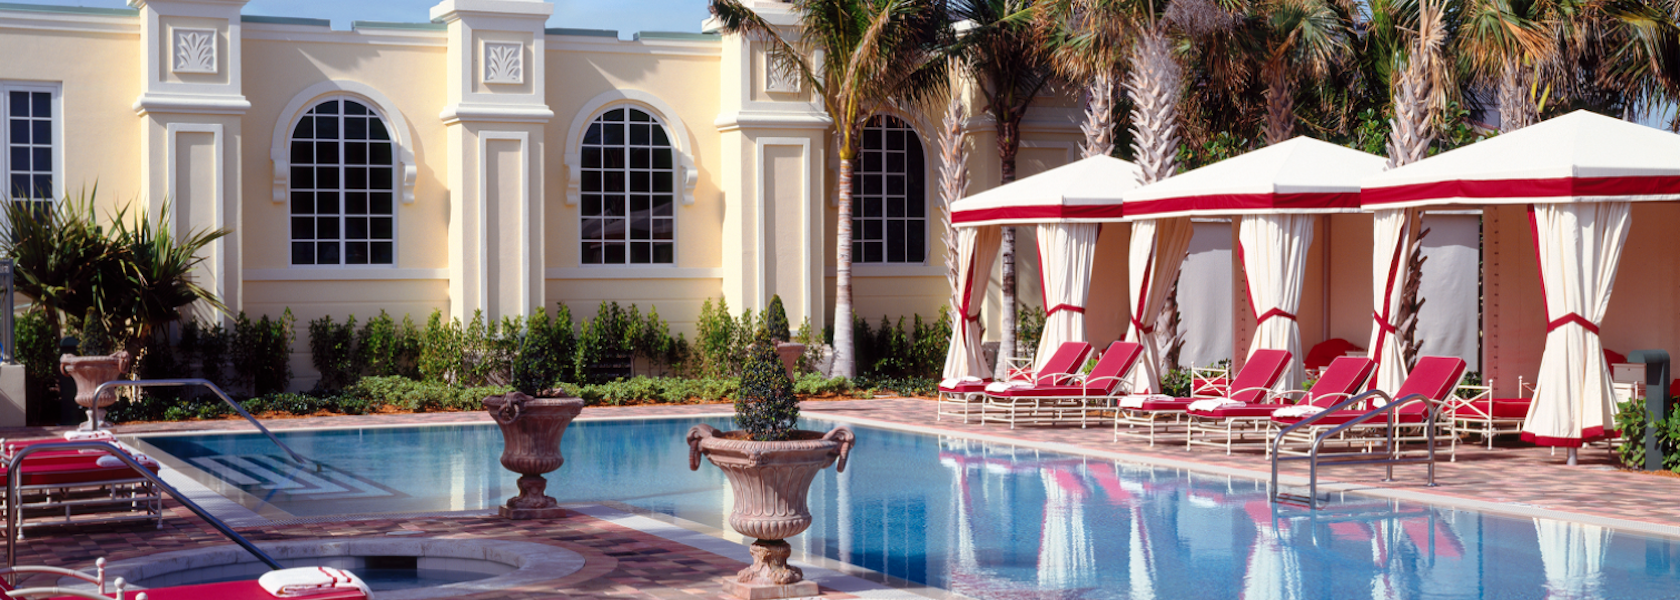 View of Acqualina pool, cabanas and greek style building.